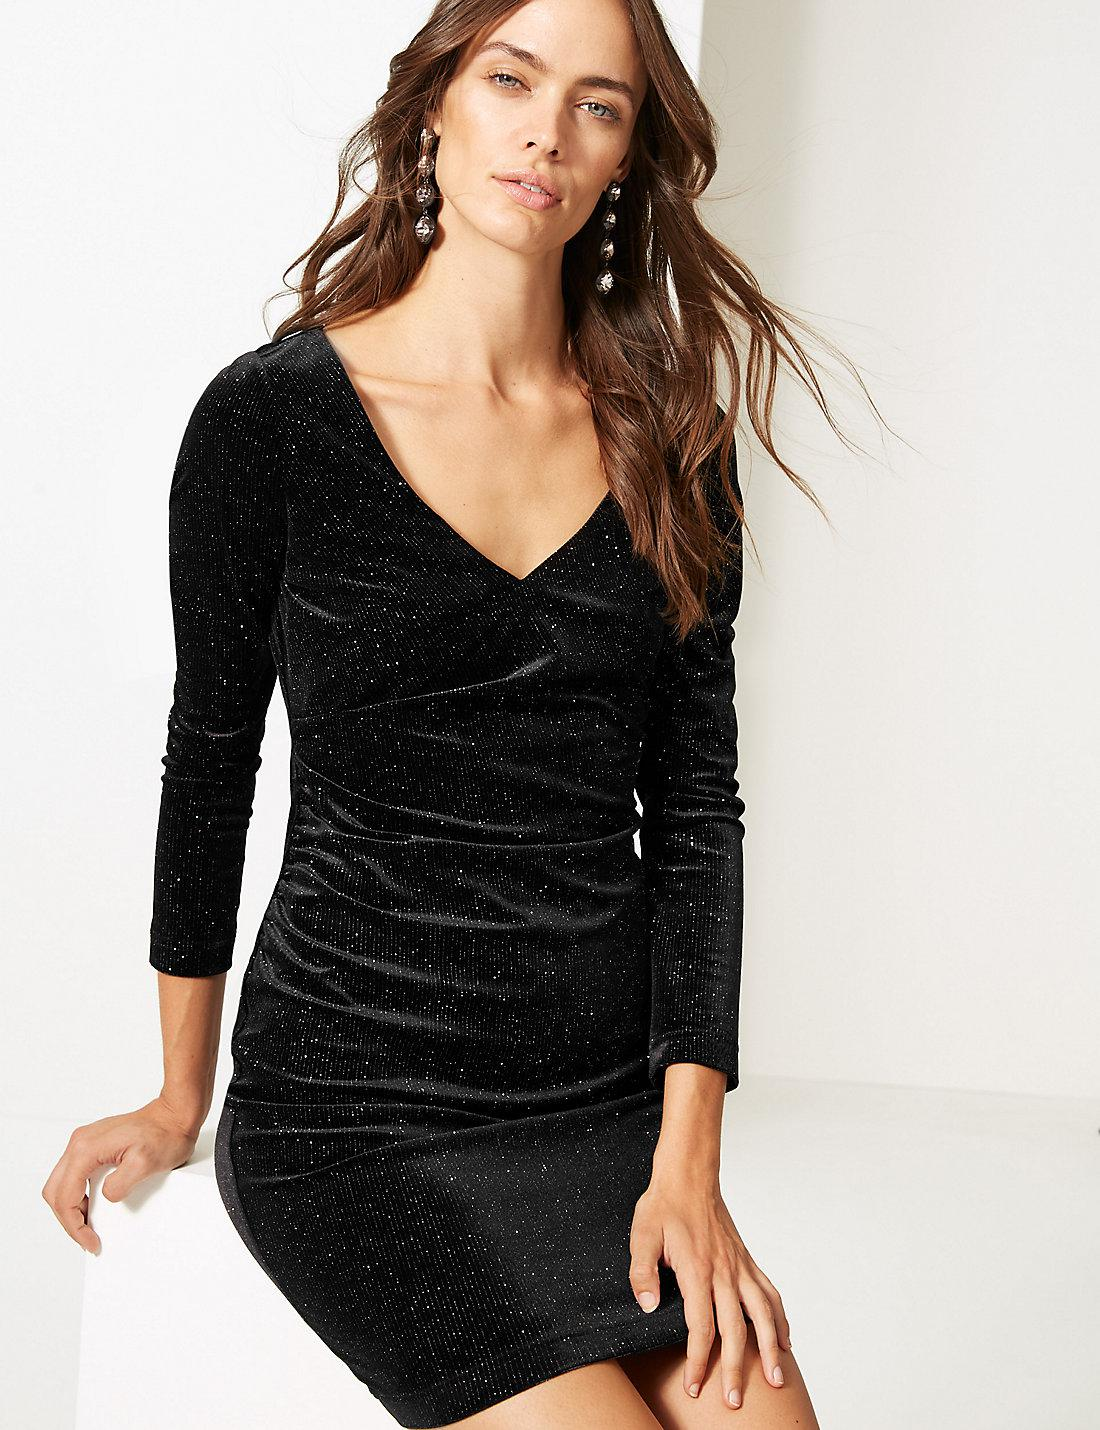 Marks and spencer bodycon dresses and dress